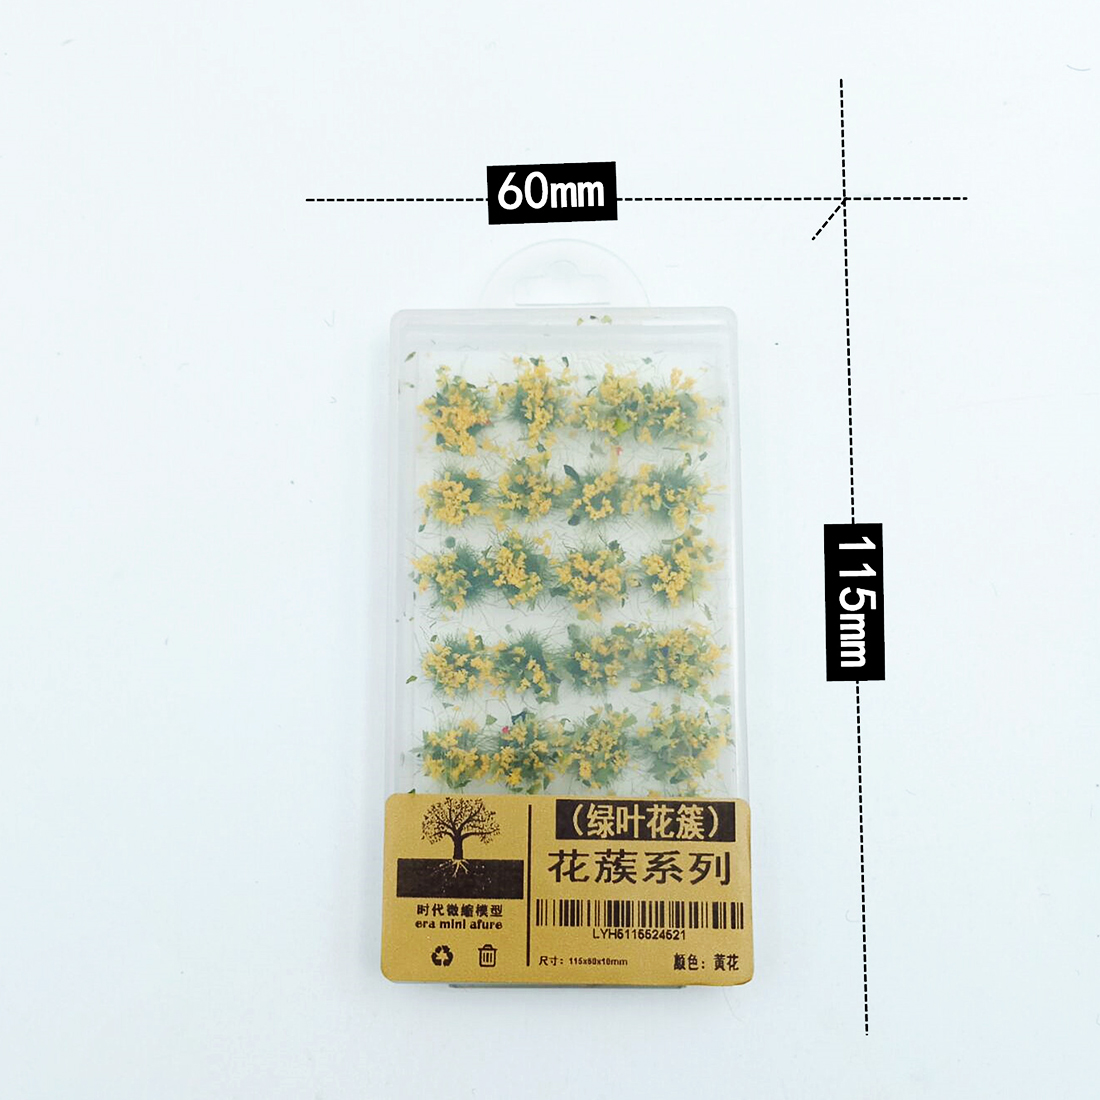 28Pcs Simulation DIY Flower Cluster Flowers Scene Model For 1:35/1:48/1:72/1:87 Scale Sand Table - Green Leaves + Yellow Flowers